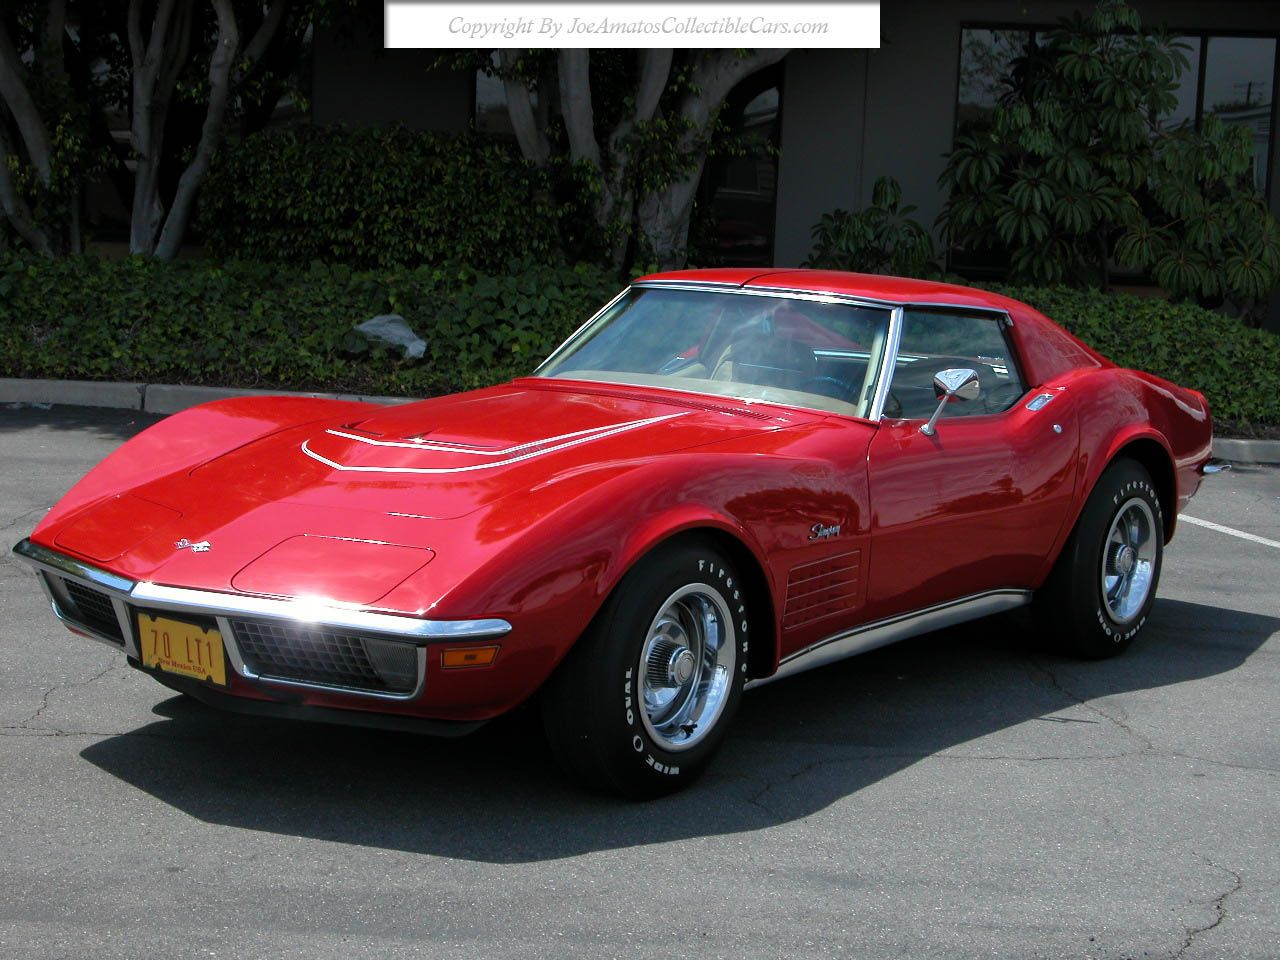 1970 Corvette Lt1 Zr1 Custom Muscle Cars Corvette Stingray Corvette